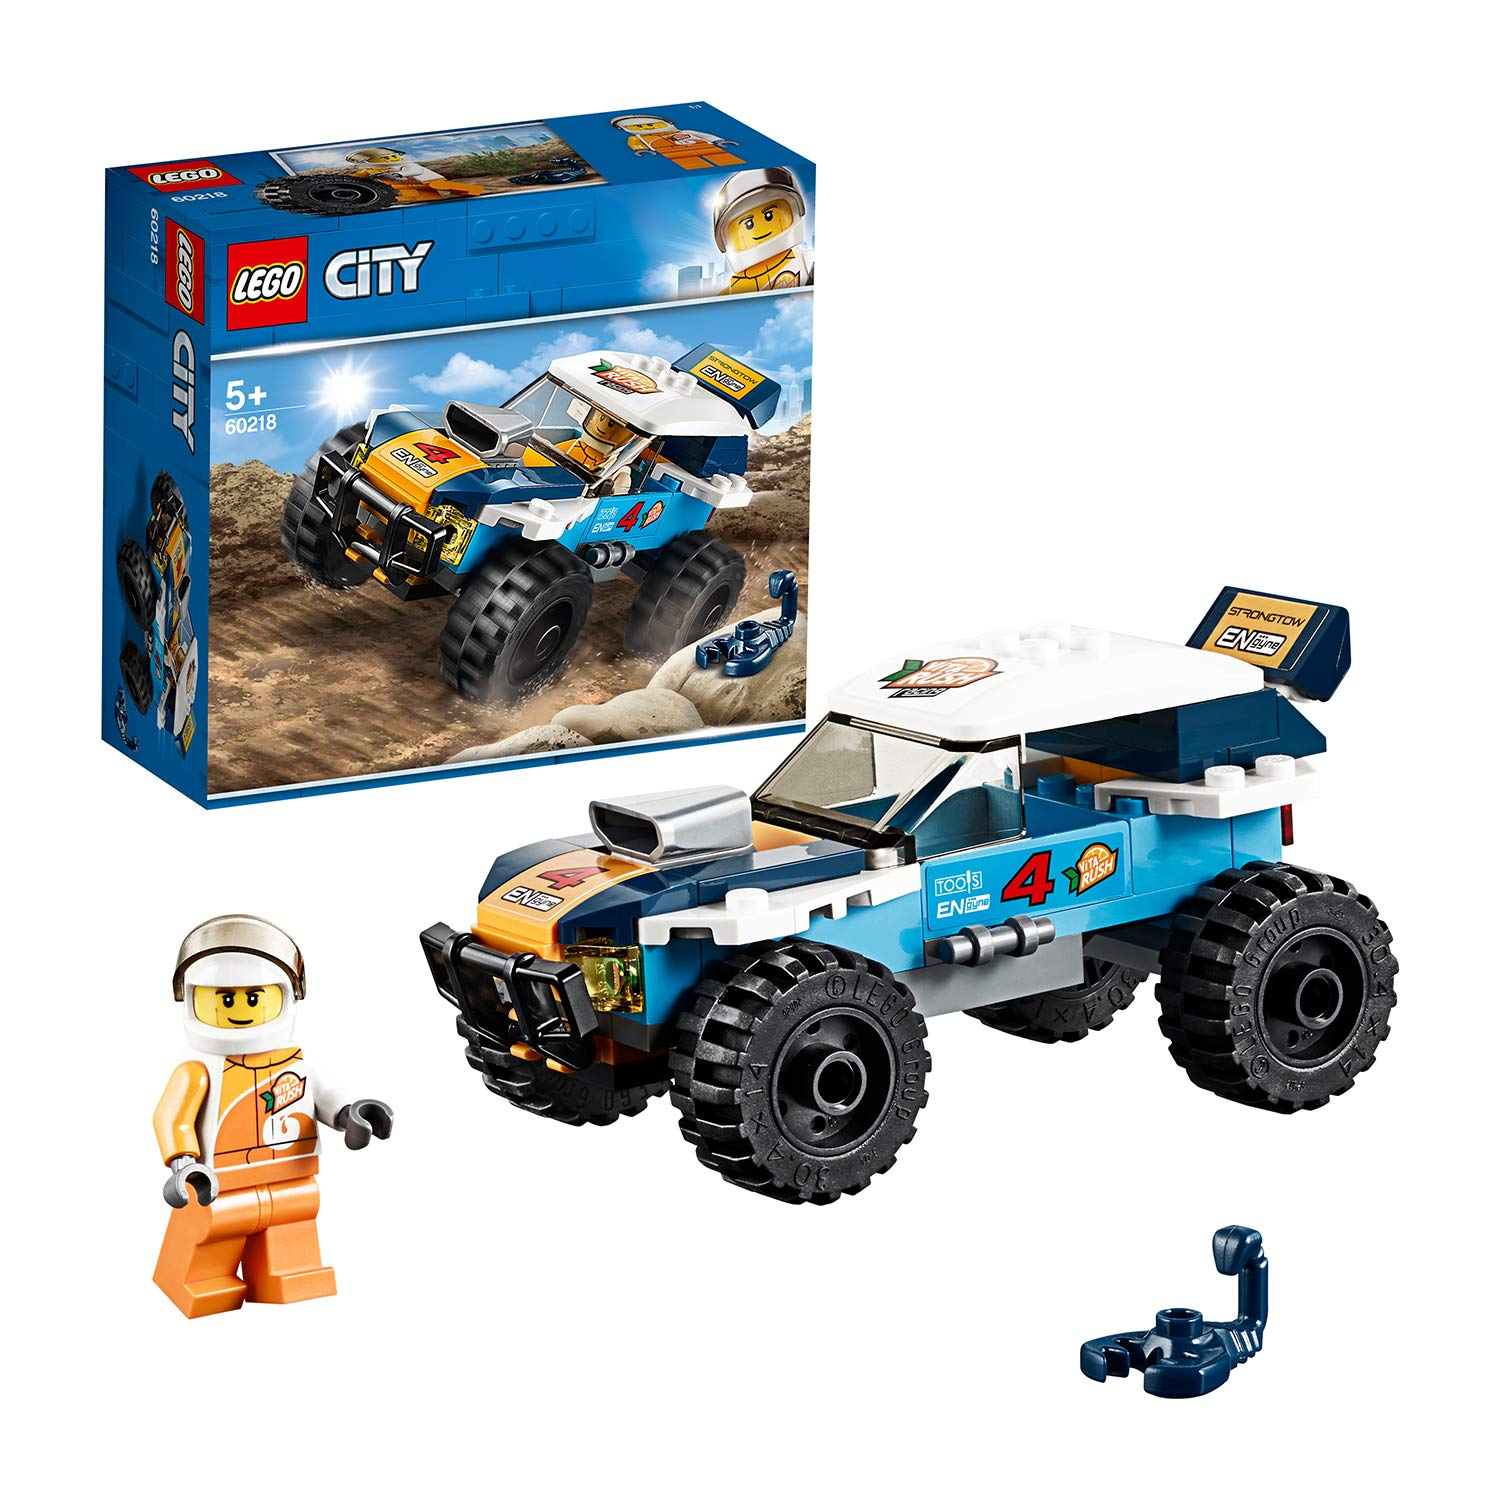 LEGO City Great Vehicles Desert Rally Racer Toy Car